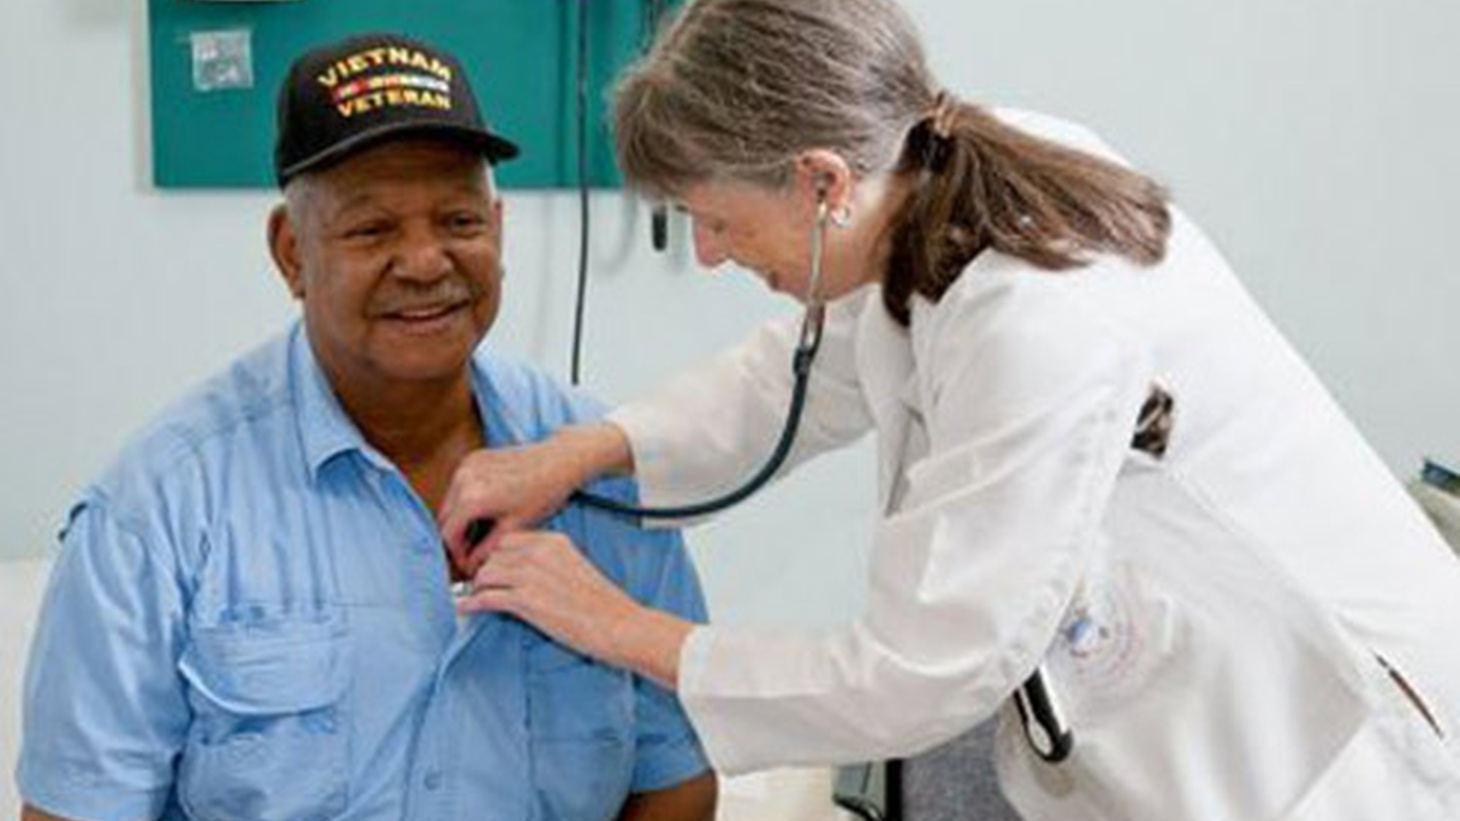 A report released this week by the Santa Barbara Foundation shines a light on the county's veteran population, including who they are what issues they face in terms of housing, education, health and wellness.